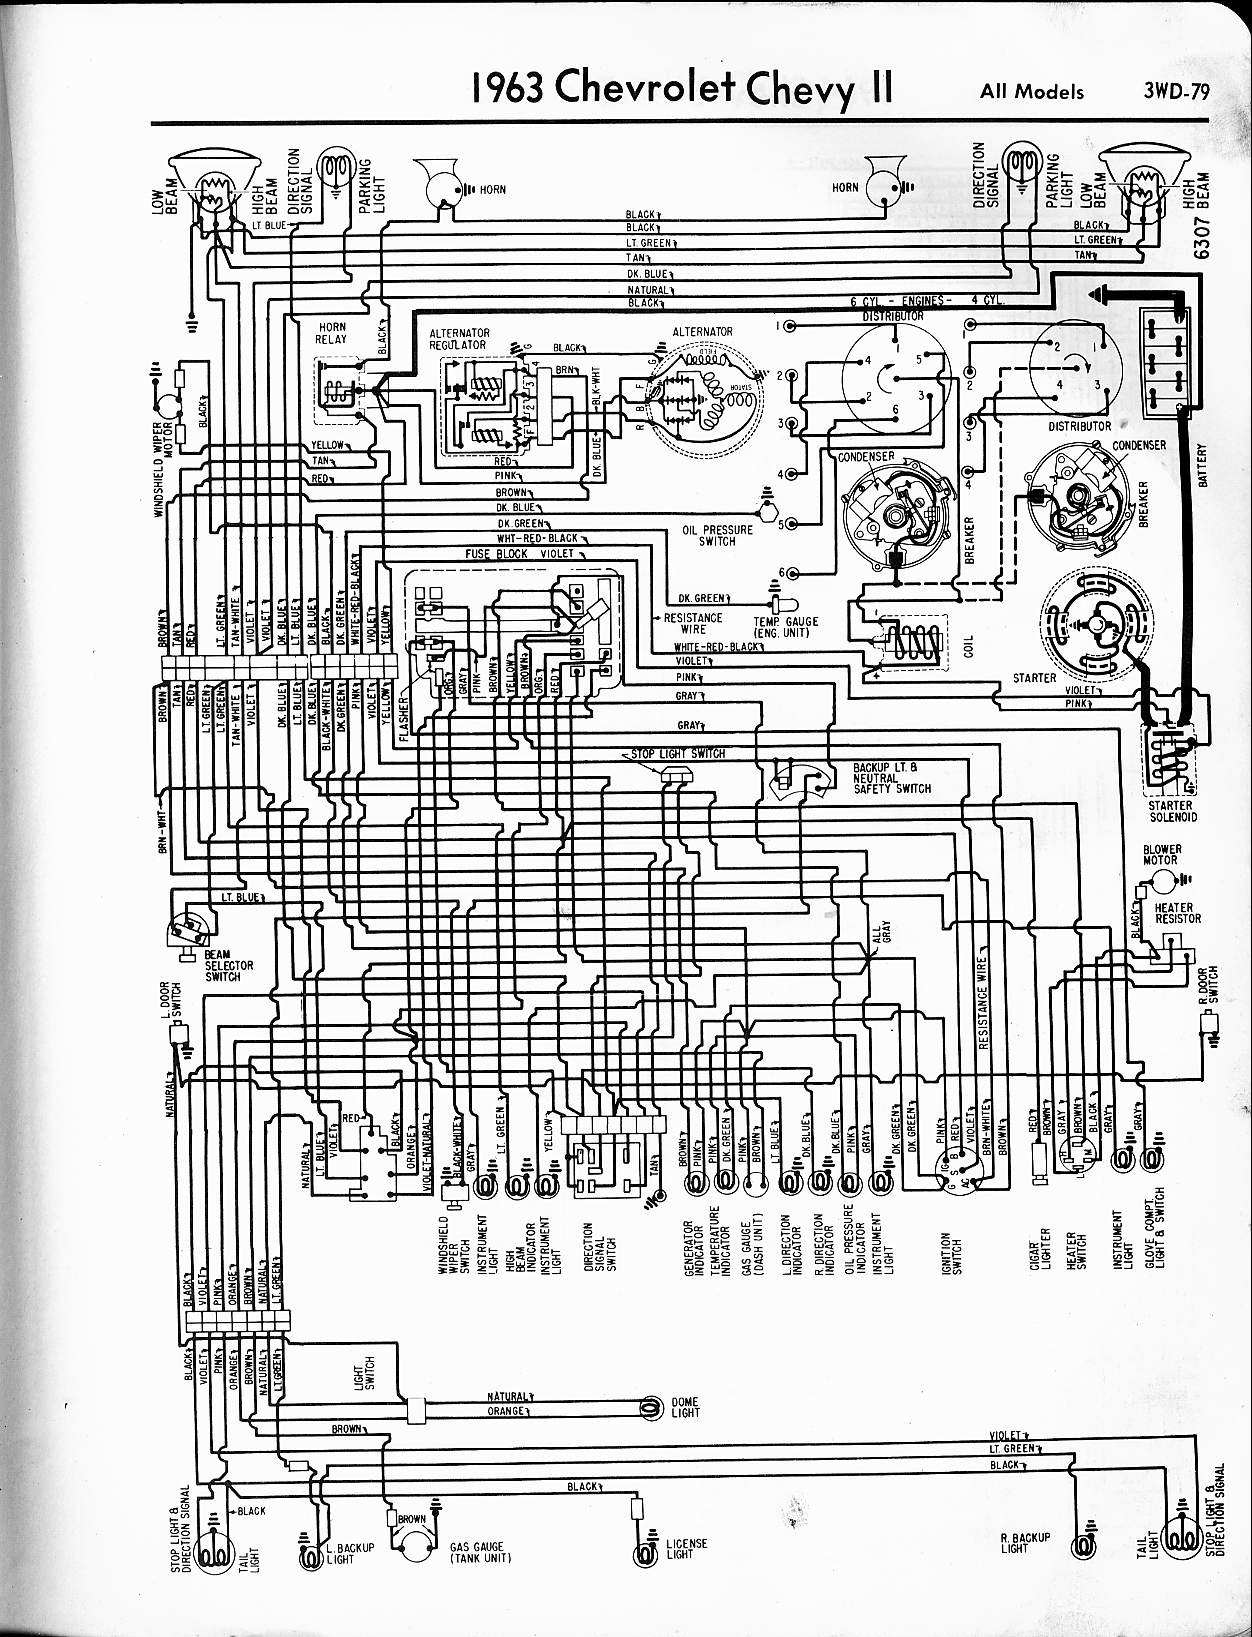 MWireChev63_3WD 079 57 65 chevy wiring diagrams 1970 chevelle dash wiring diagram at readyjetset.co